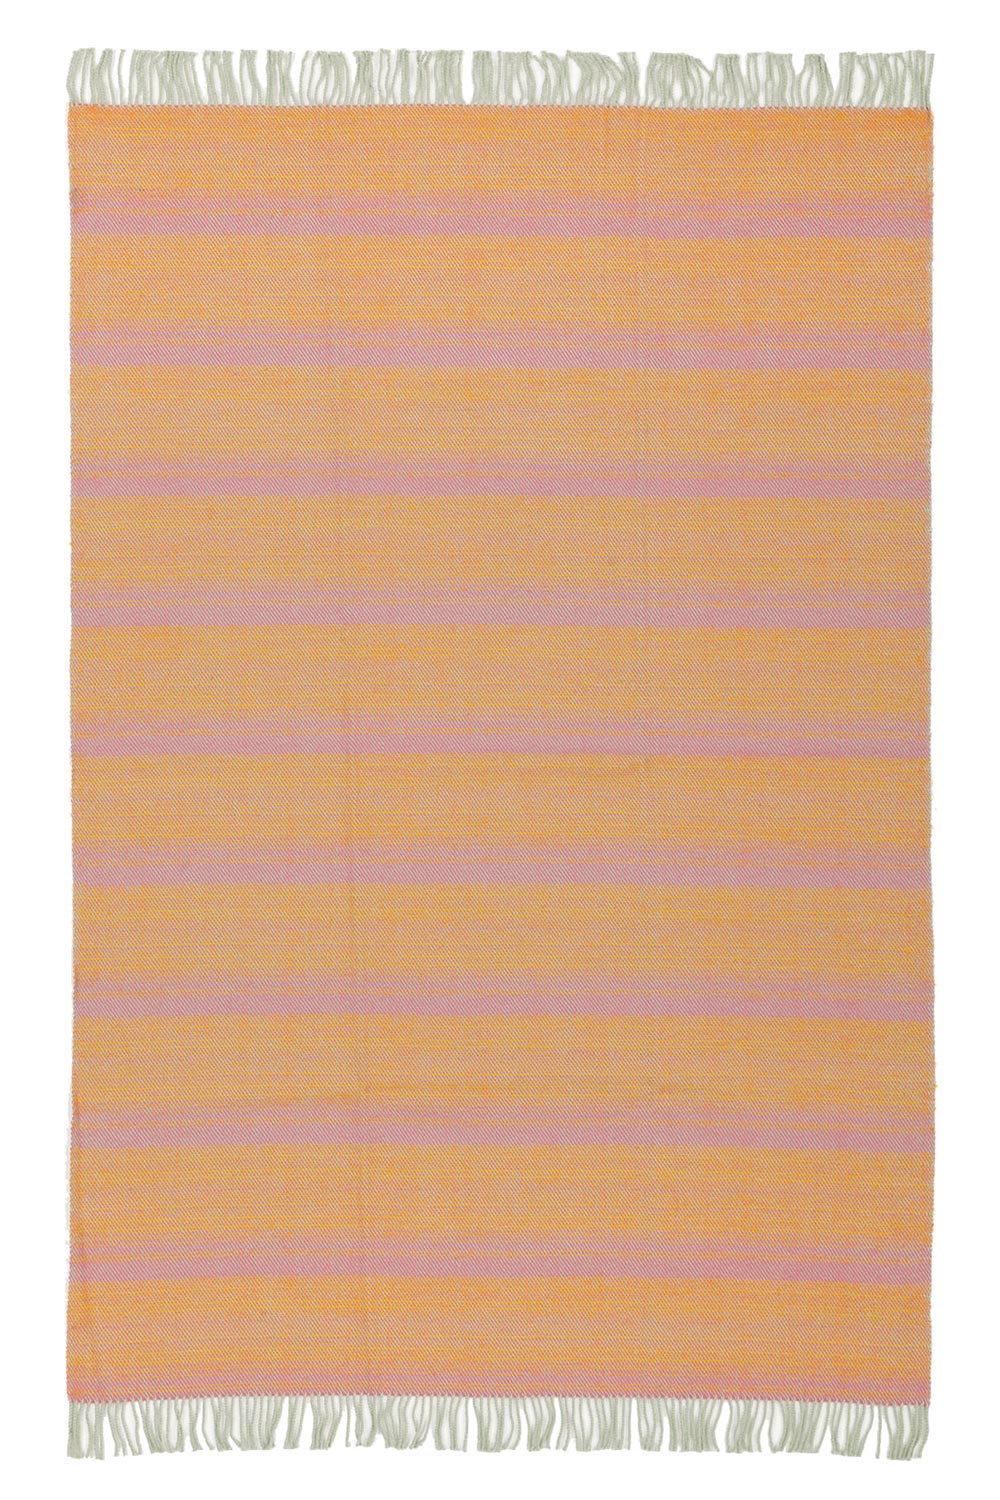 wool blanket in rose and yellow color with fringes, spread out